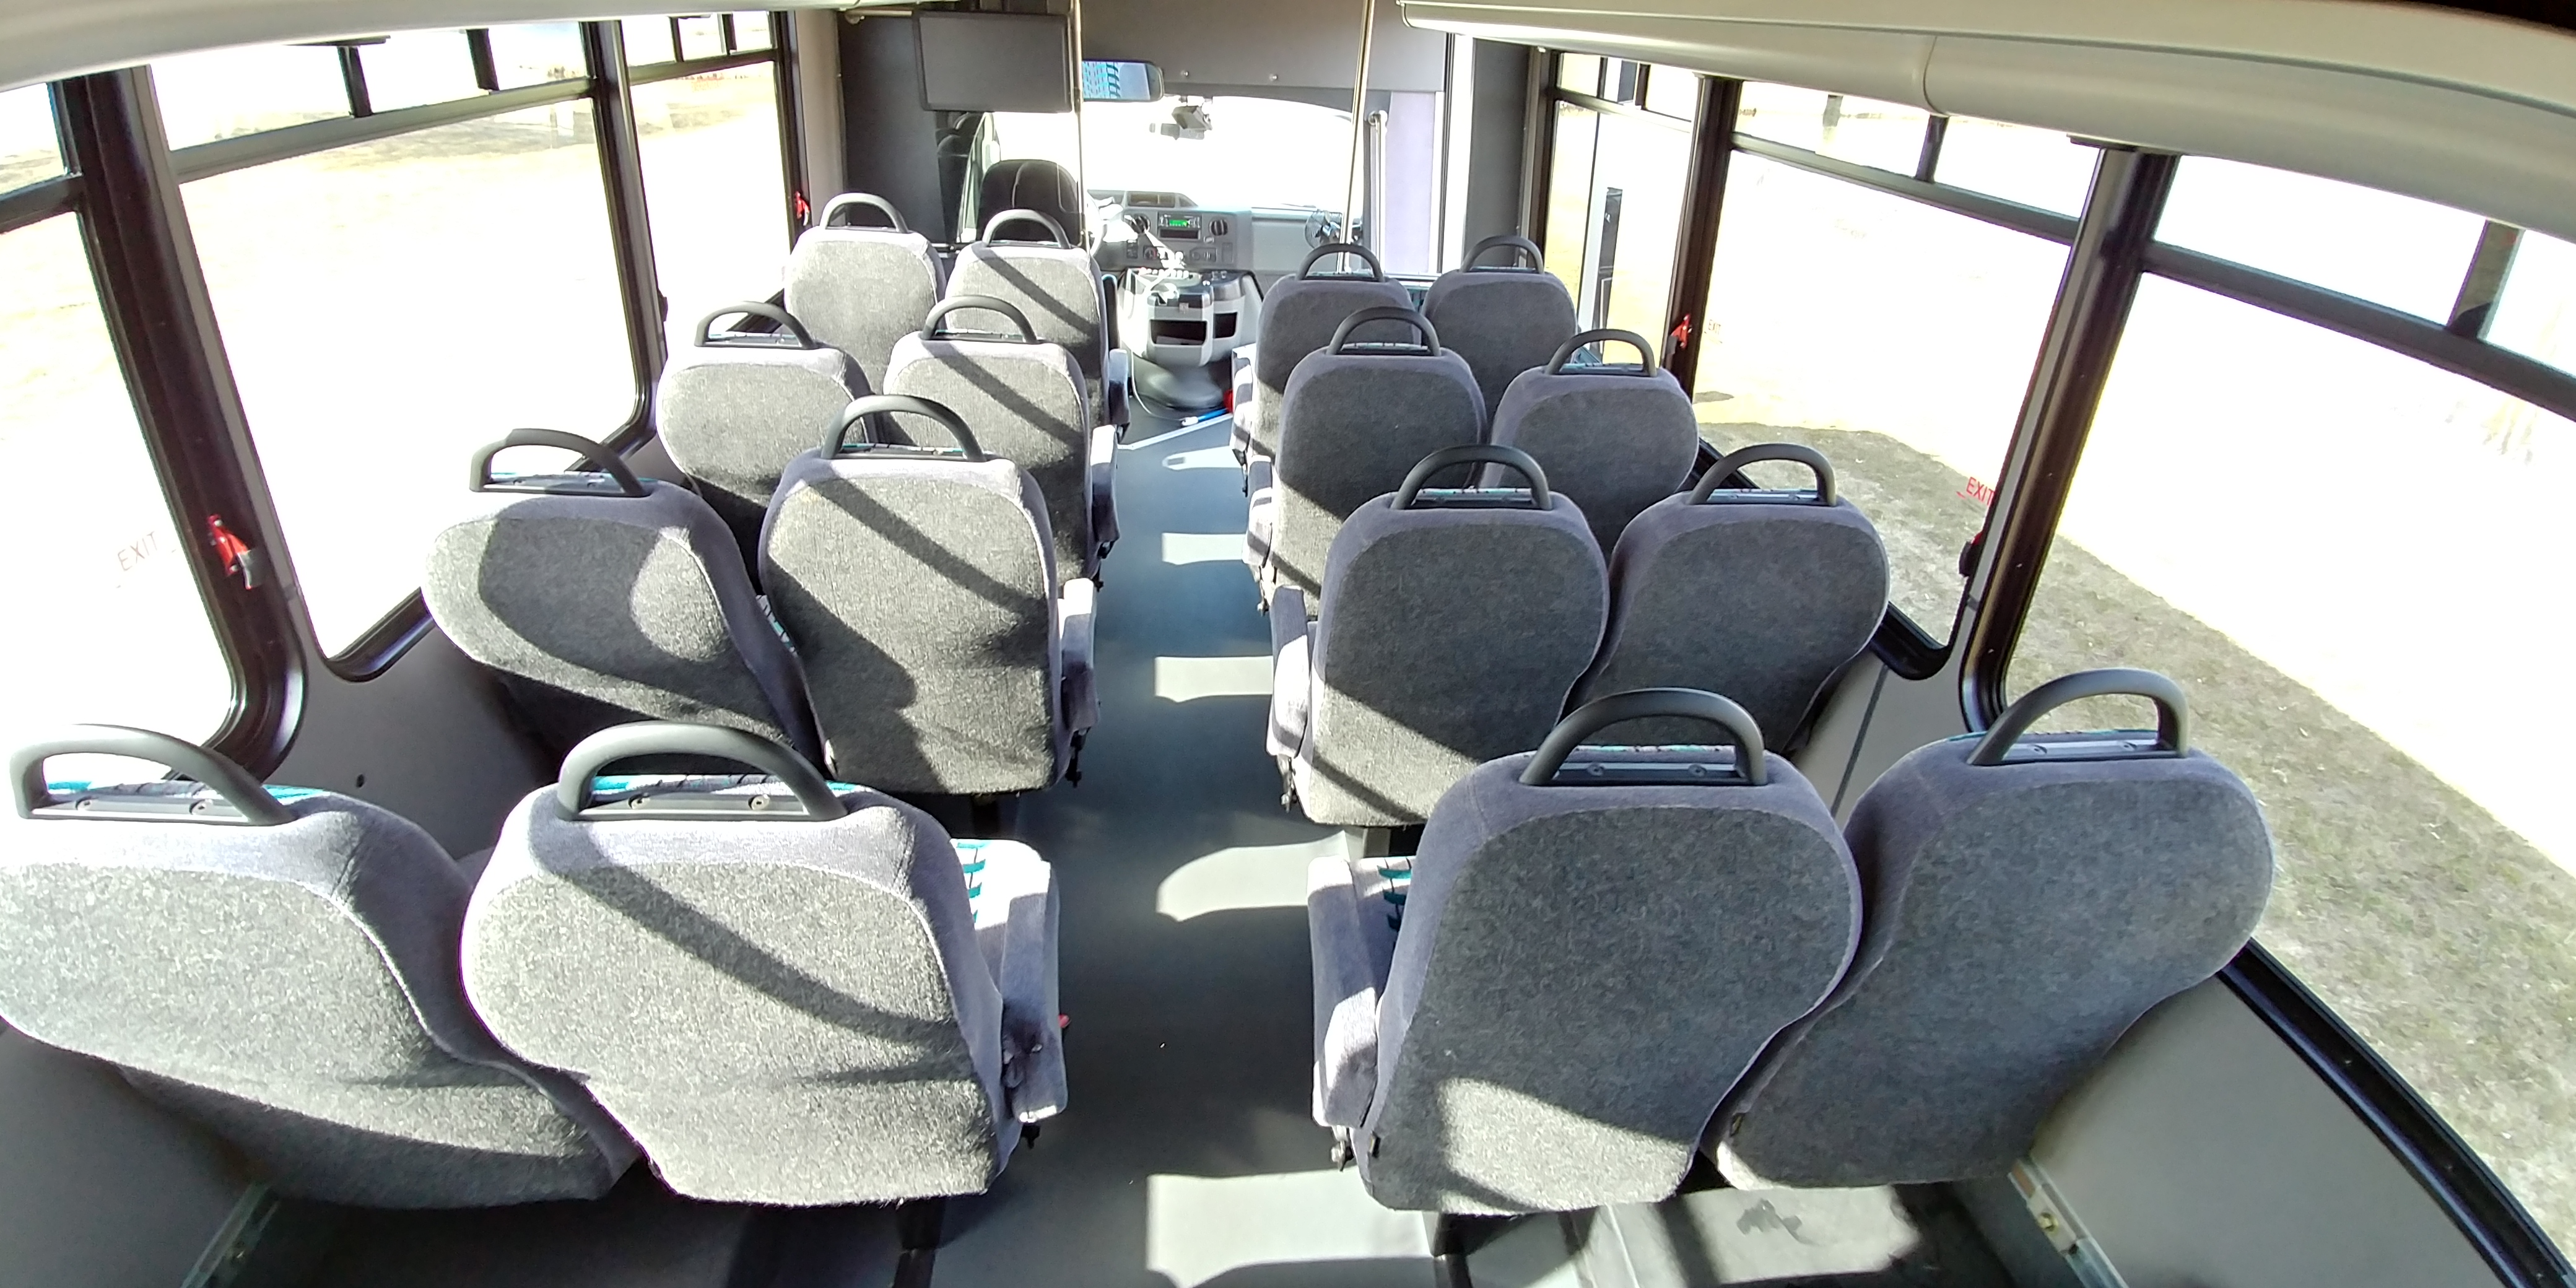 24 Passenger Executive Shuttle Bus Interior 2